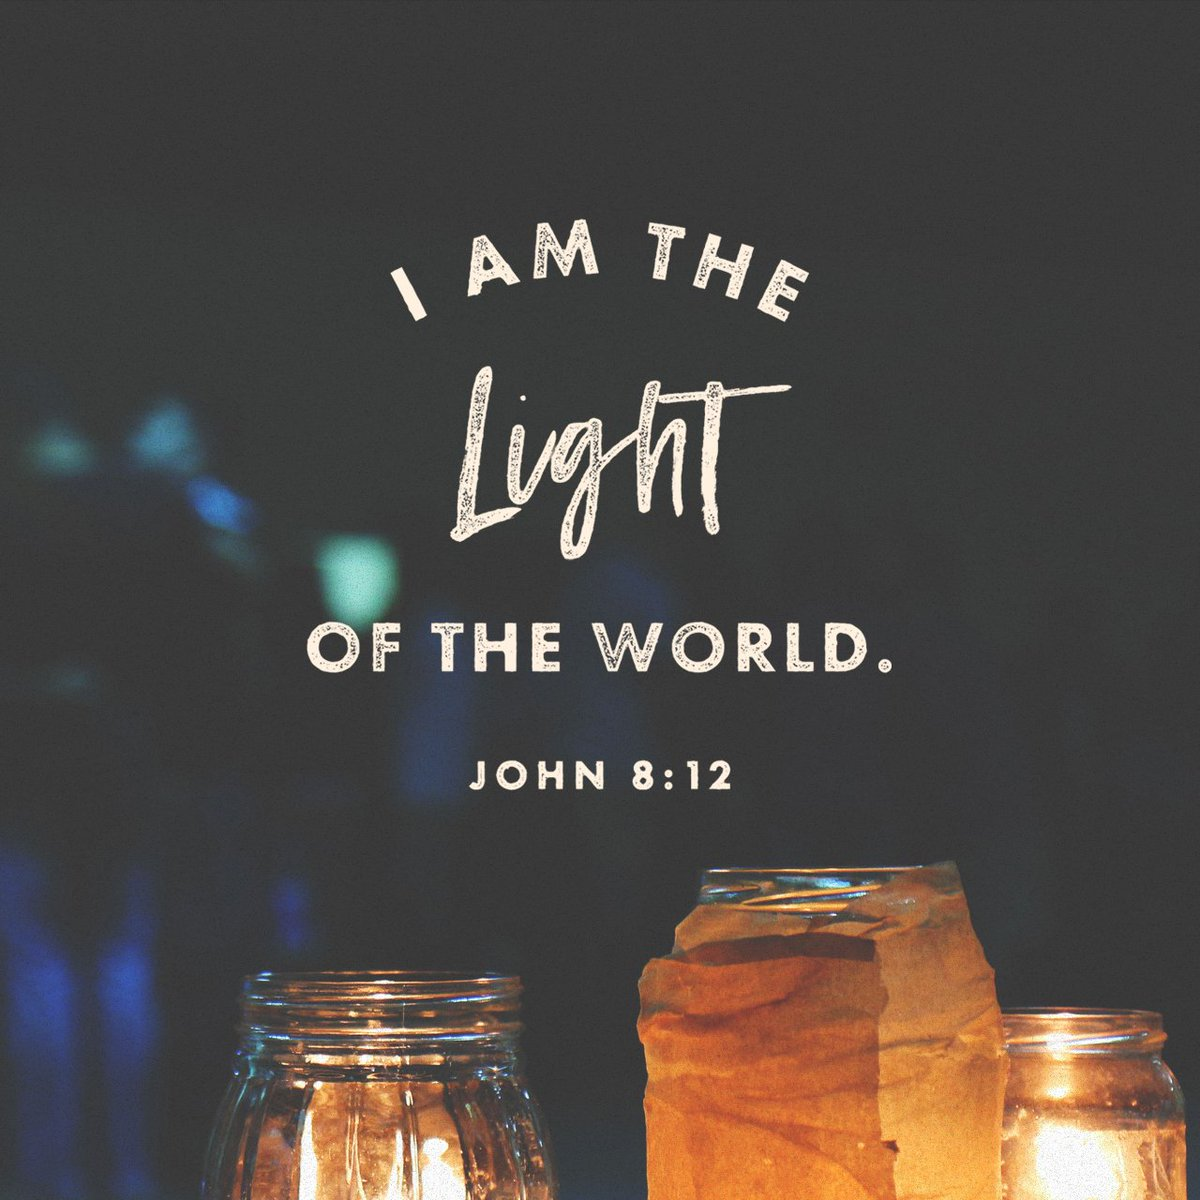 Thrifty He Who Follows Daily Bible Verse On Jesus Again Spoke To M Bible Verses About Light At End Daily Bible Verse On Jesus Again Spoke To Am Light Tunnel Bible Verses About Light Defeating Ness inspiration Bible Verses About Light